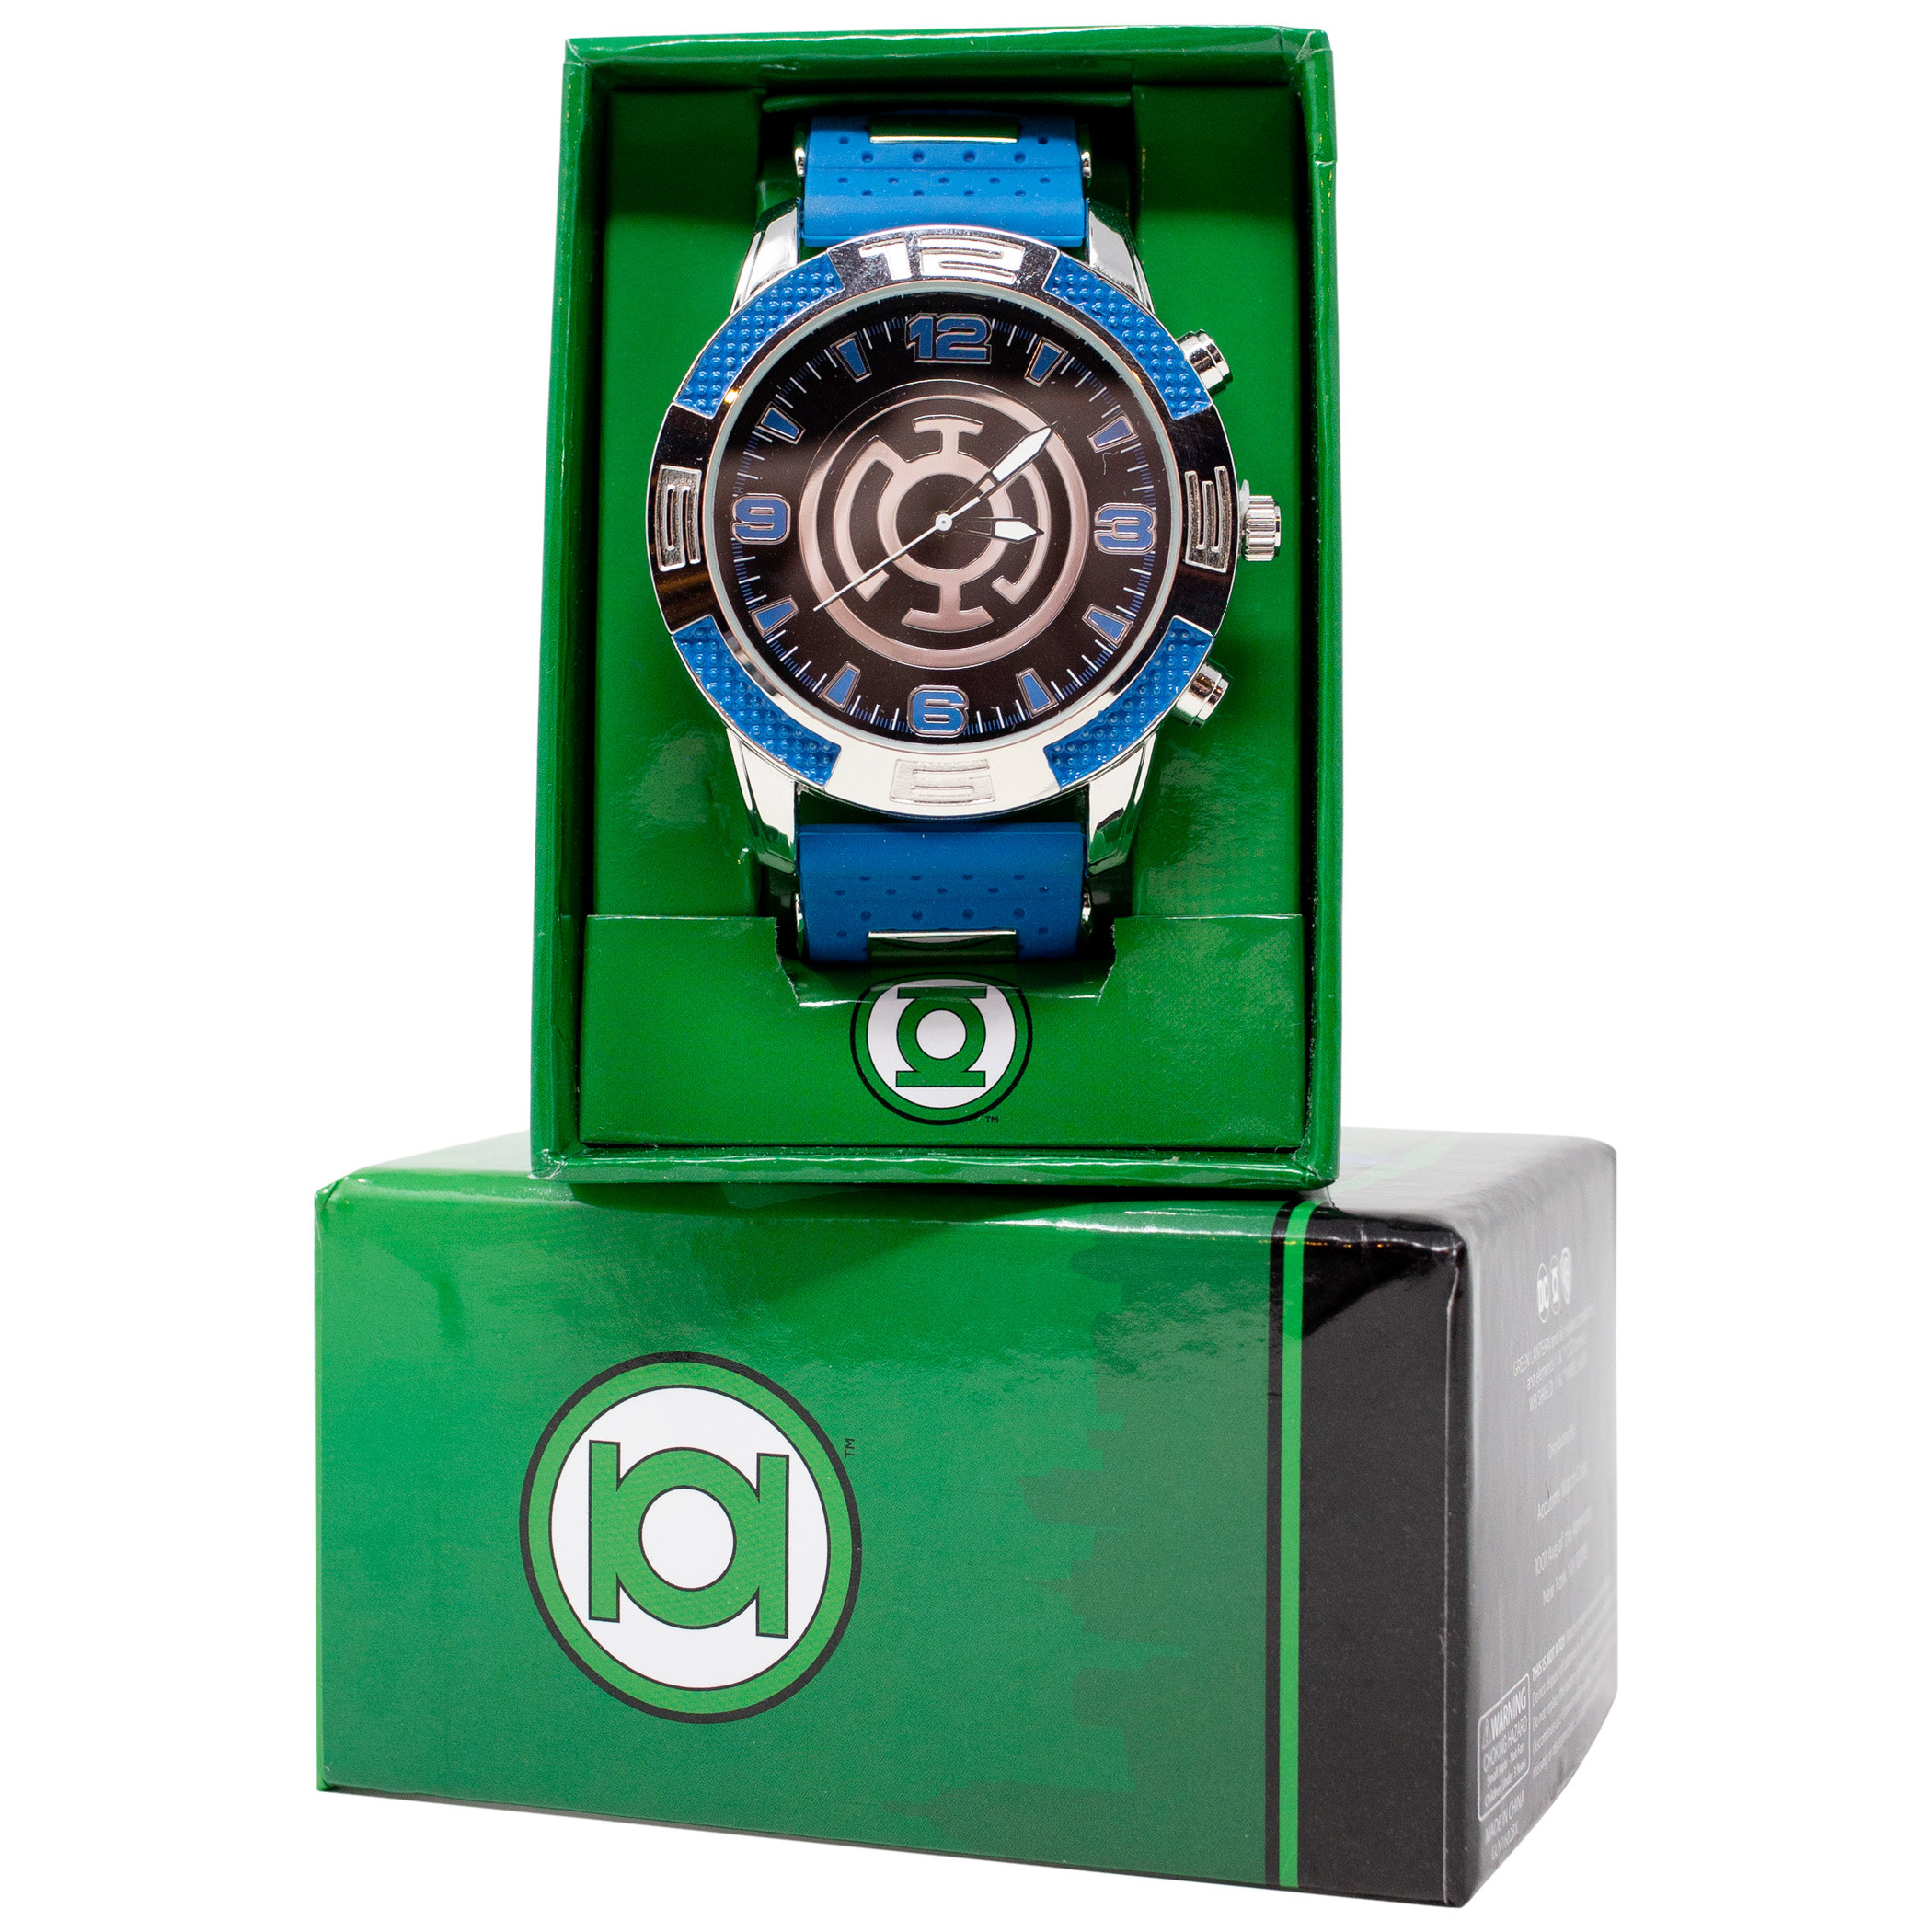 Blue Lantern Hope Symbol Watch with Rubber Band